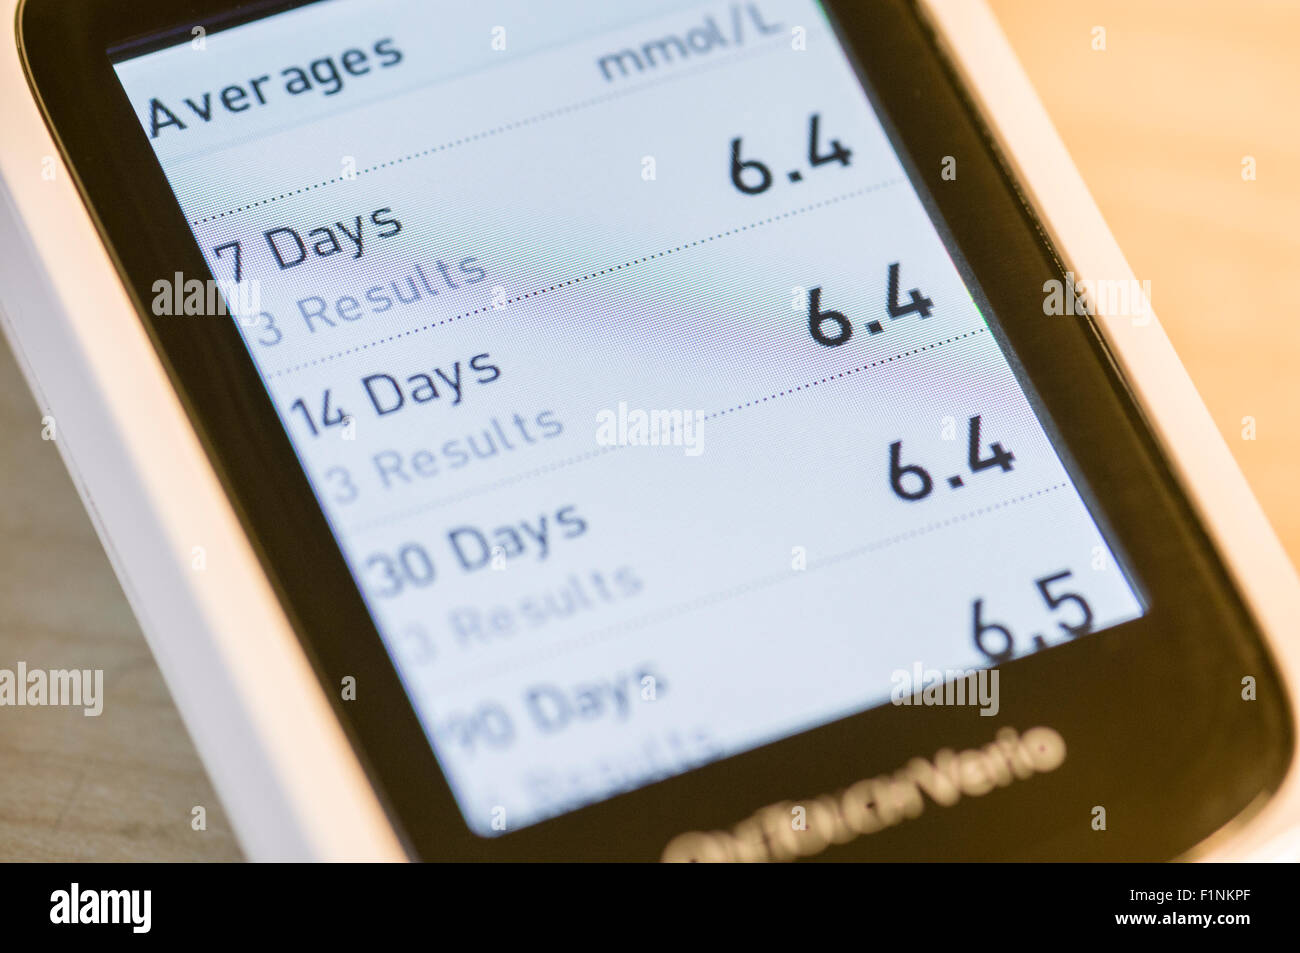 Blood glucose monitor showing averages over the past 3, 7, 14, 30 and 60 days. - Stock Image